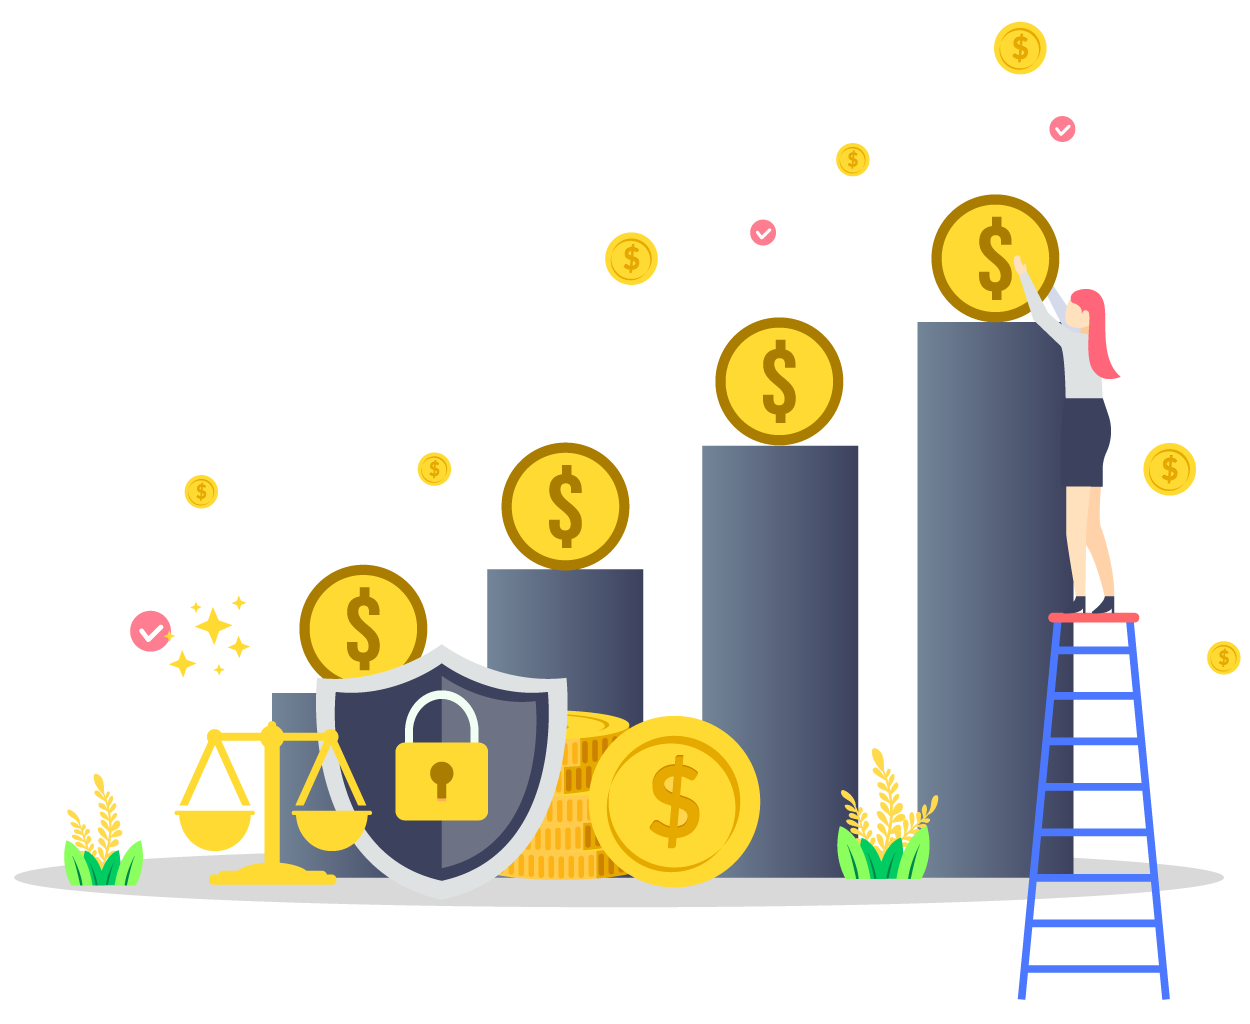 The-Simple-Guide-to-Improving-Your-Law-Firms-Financial-Security